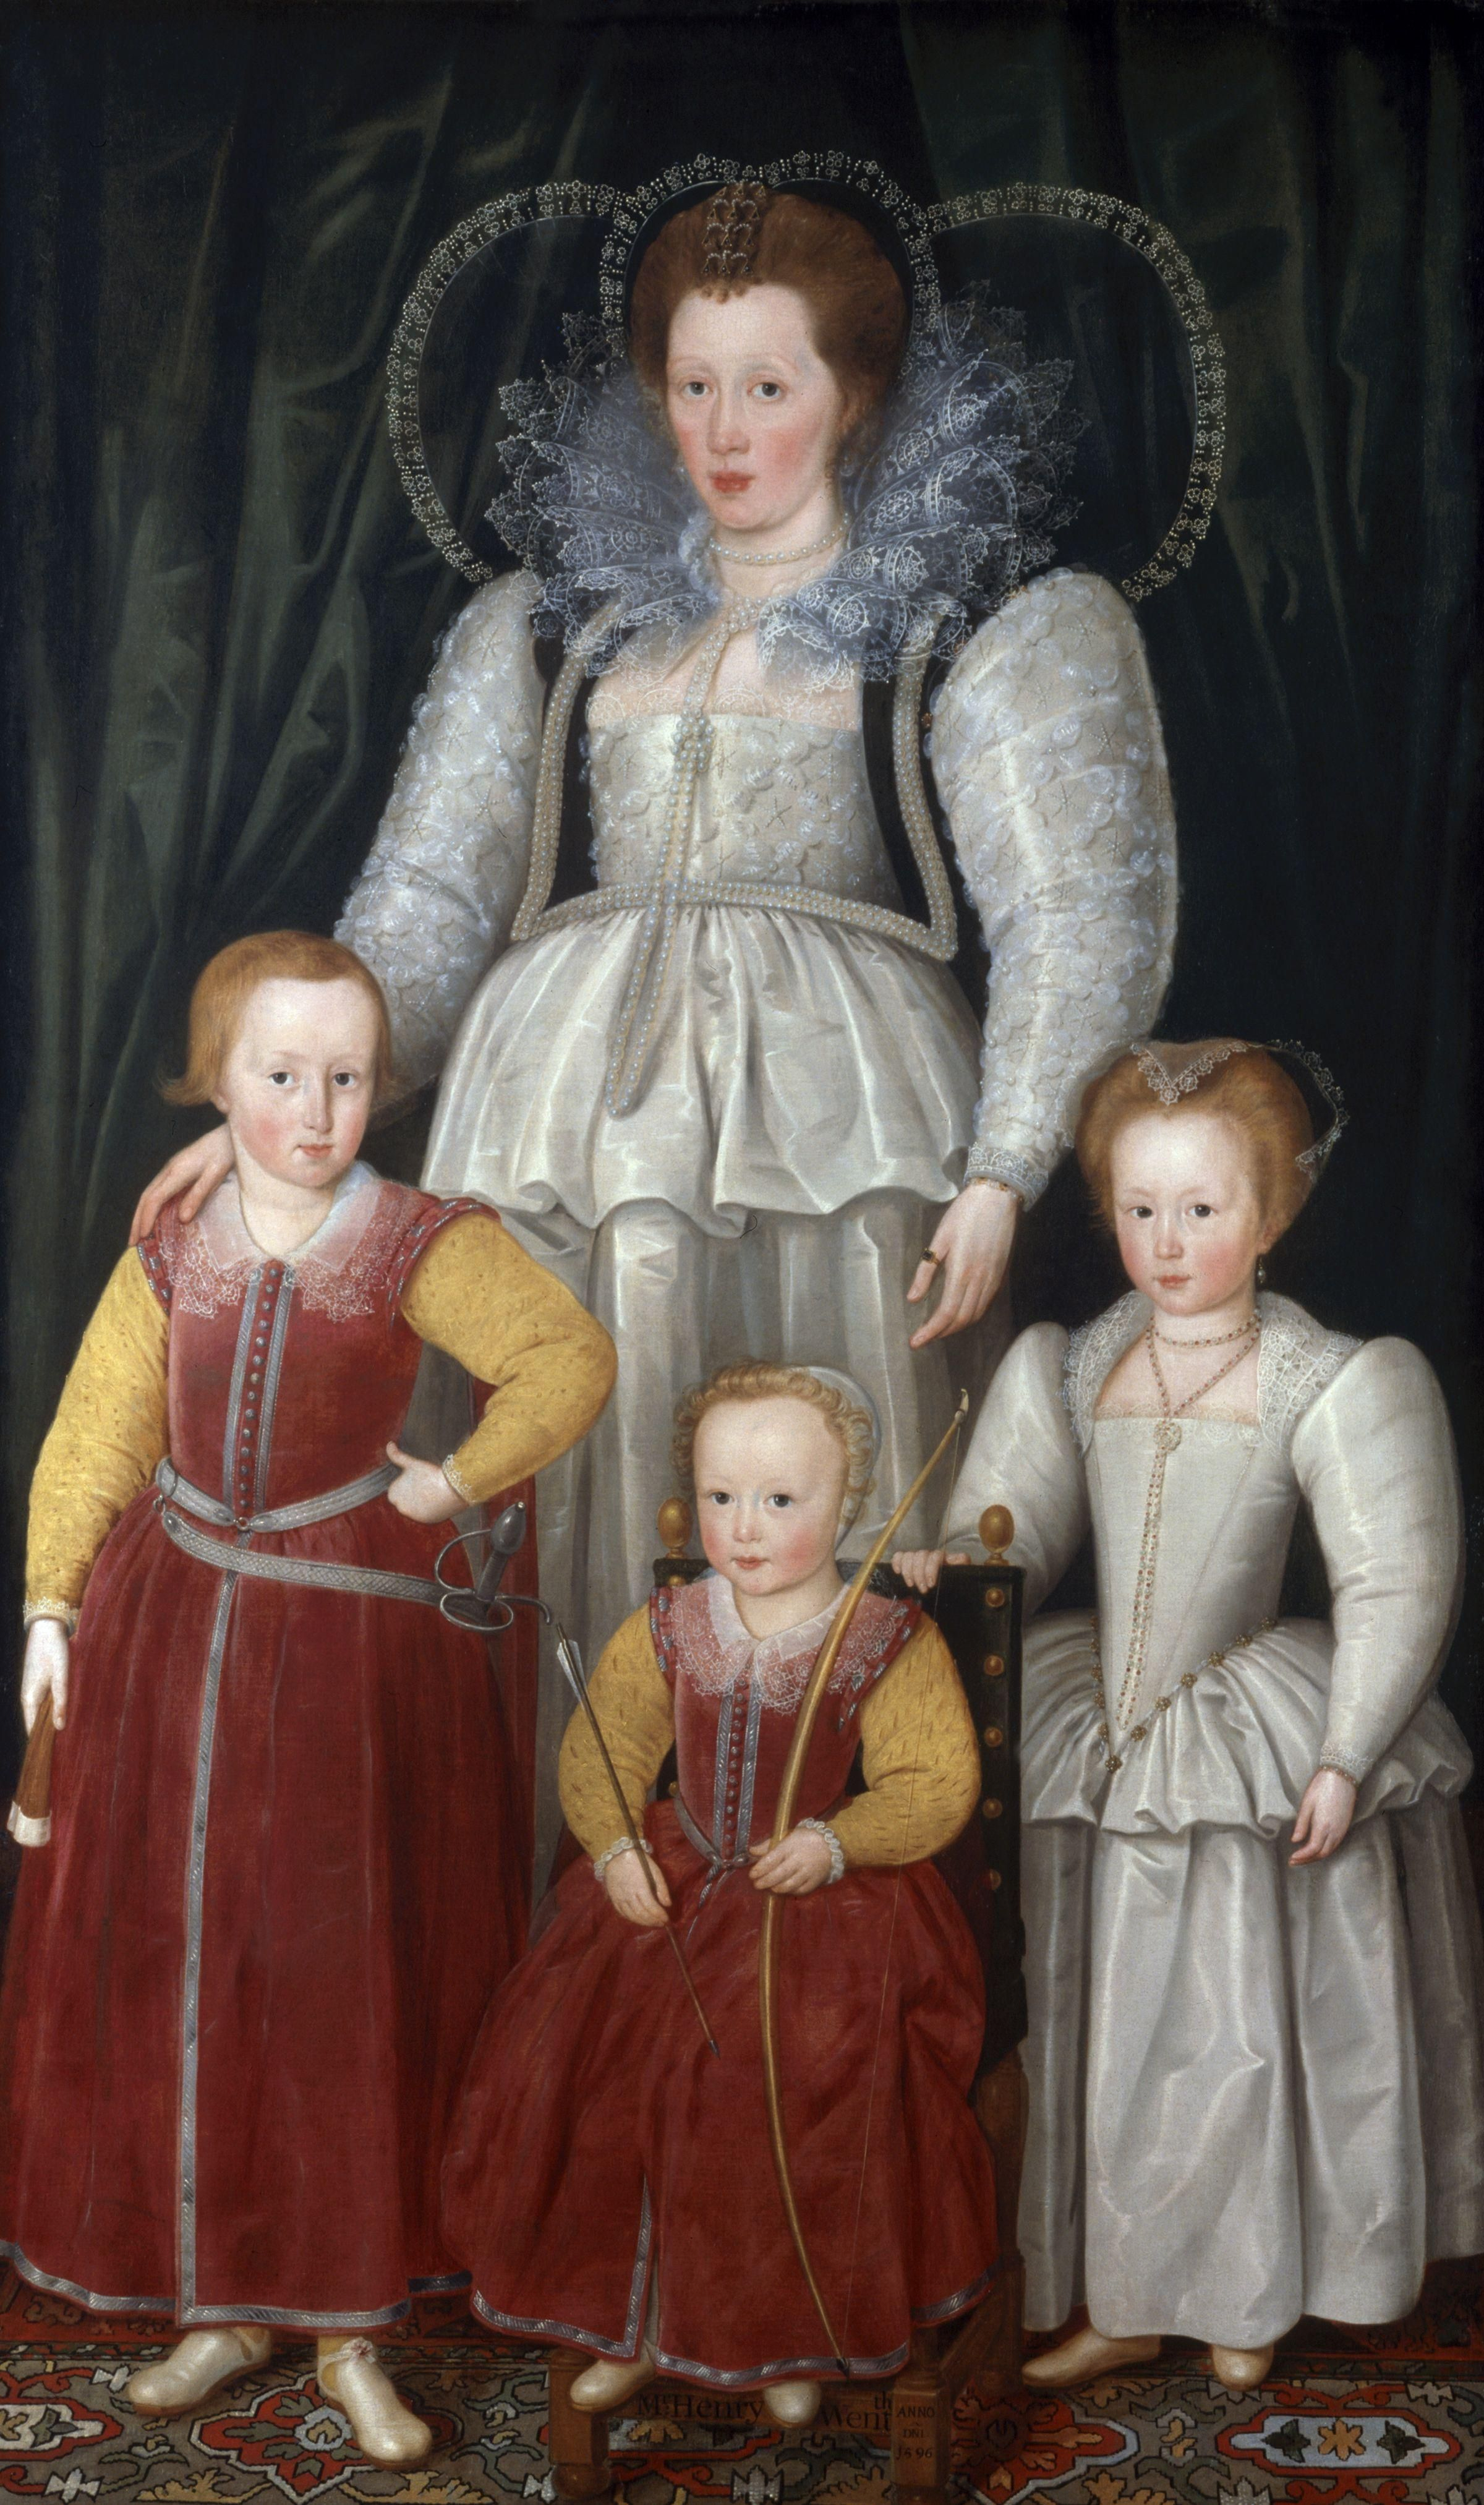 Anne, Lady Pope with her children, 1596, National Portrait Gallery, London by Marcus Gheeraerts the Younger